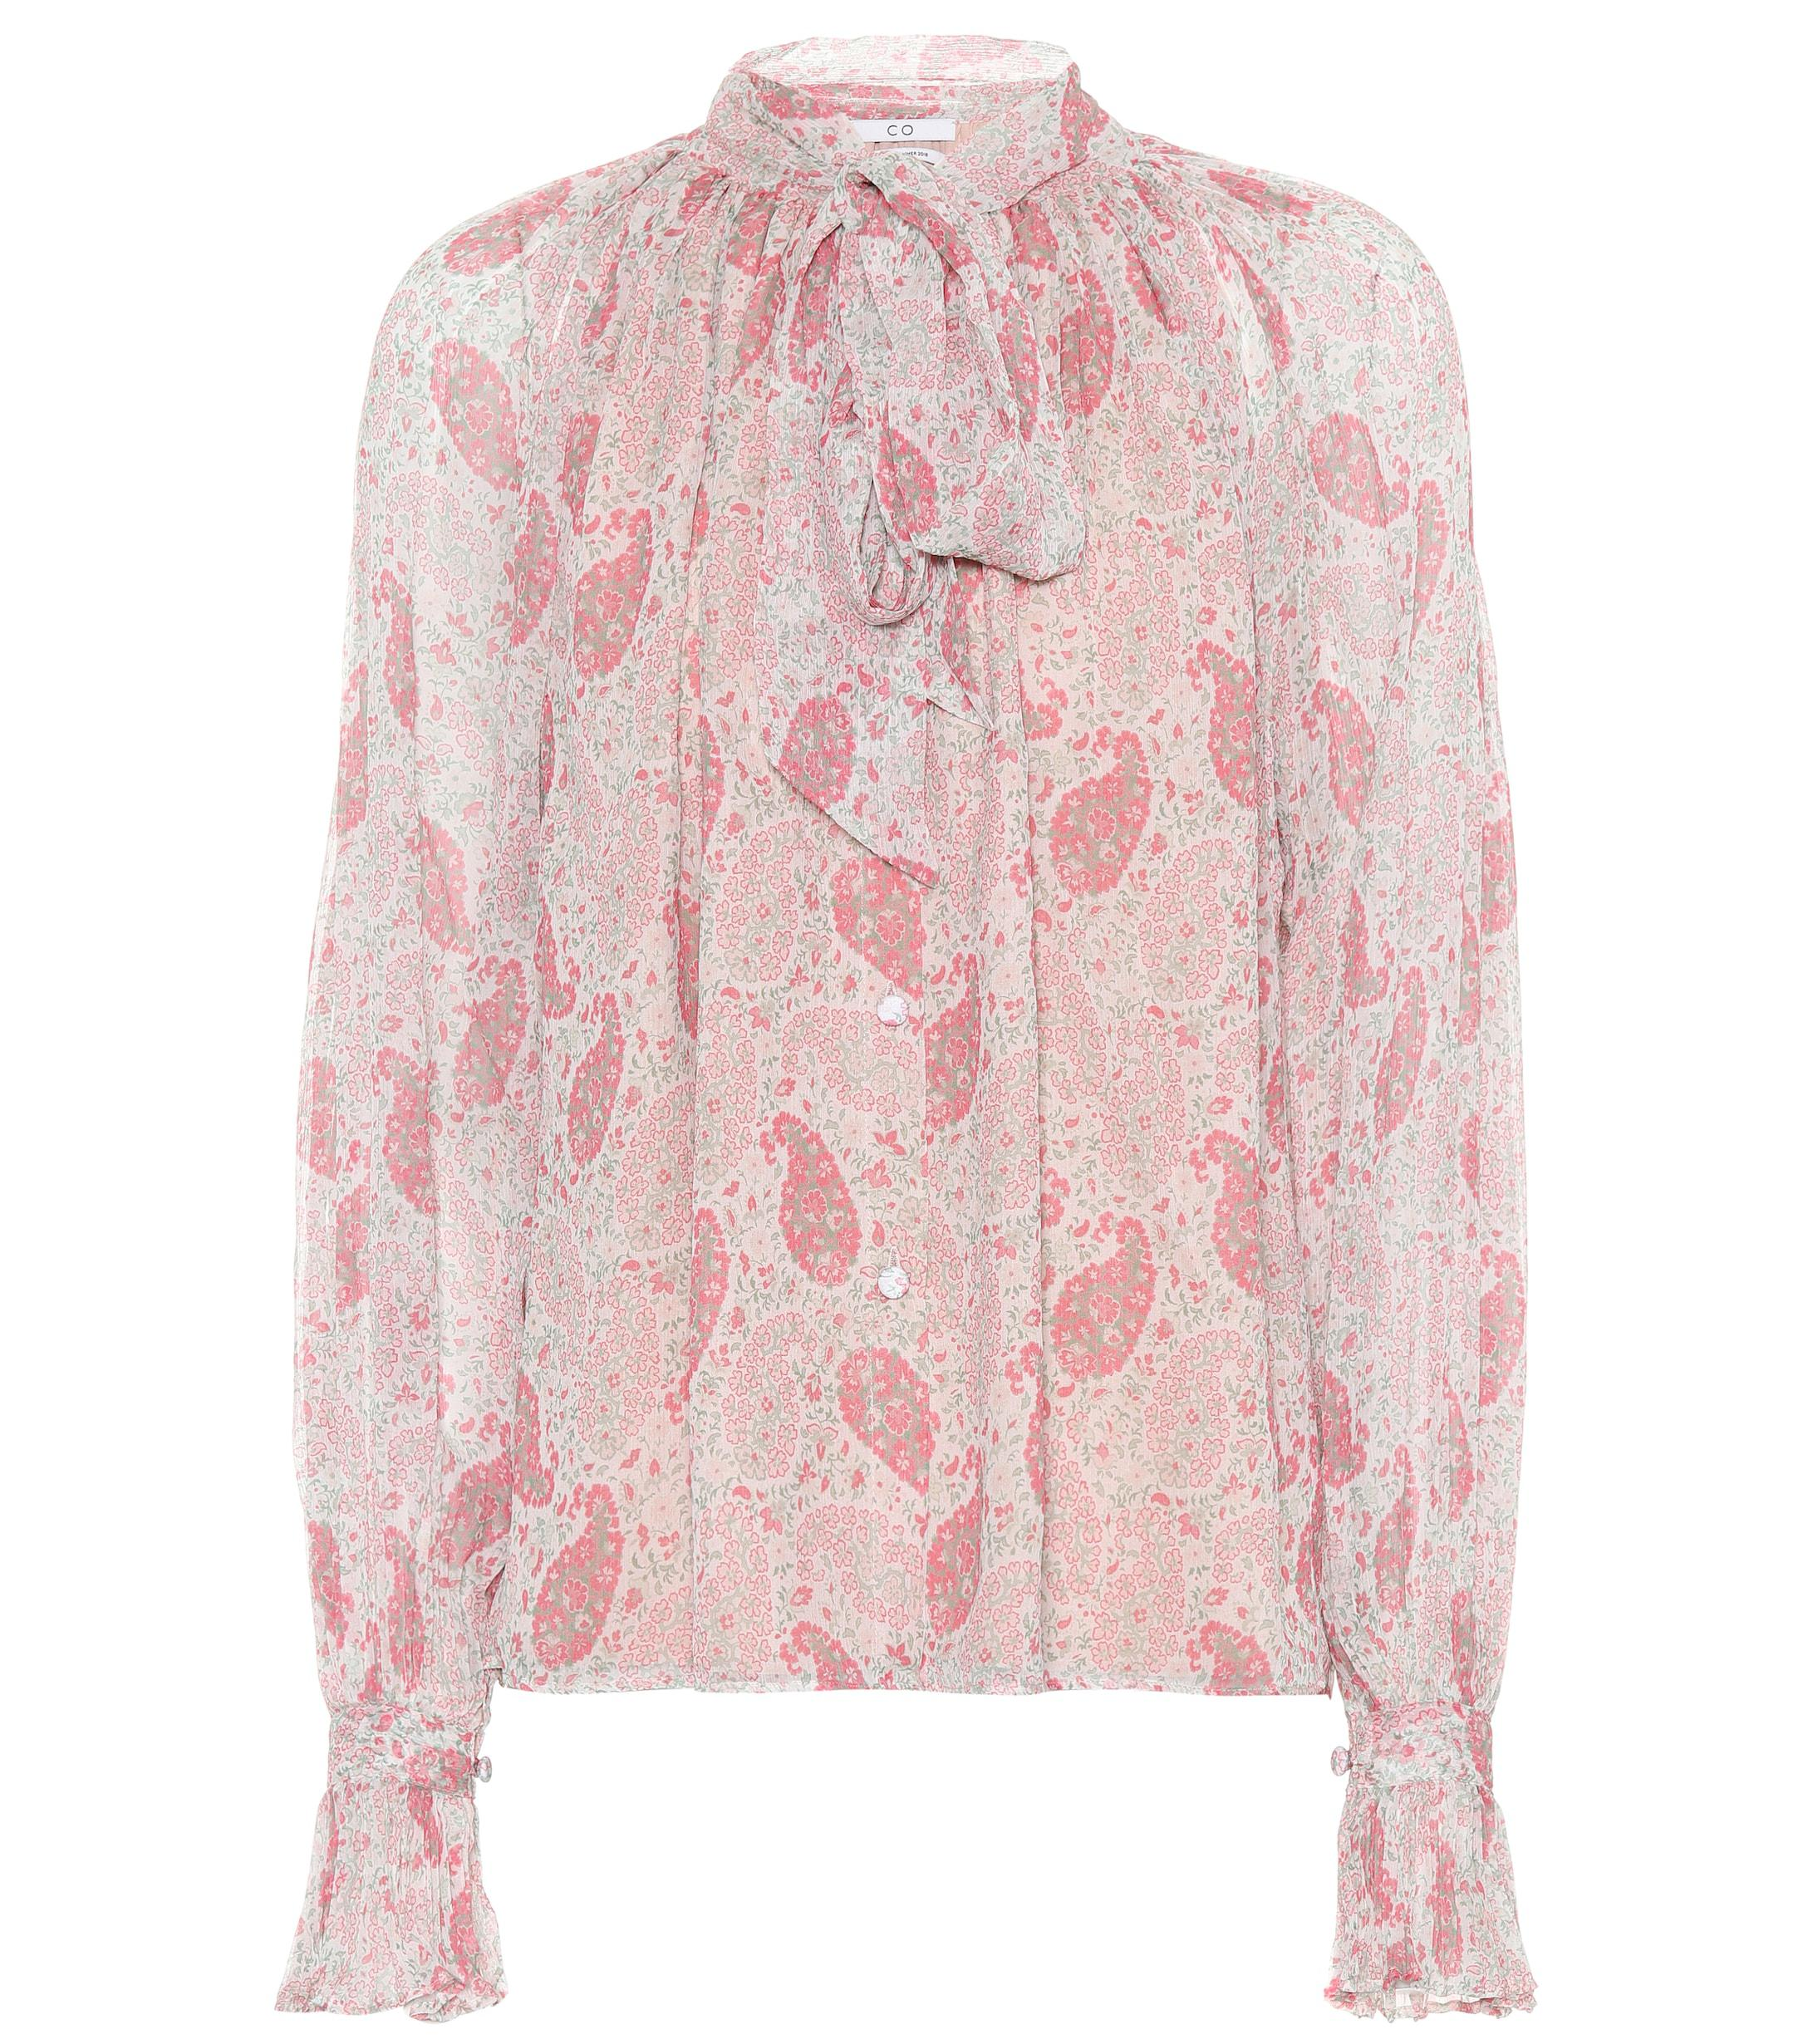 c5e9bc8494 Co. Printed Silk Top in Pink - Lyst